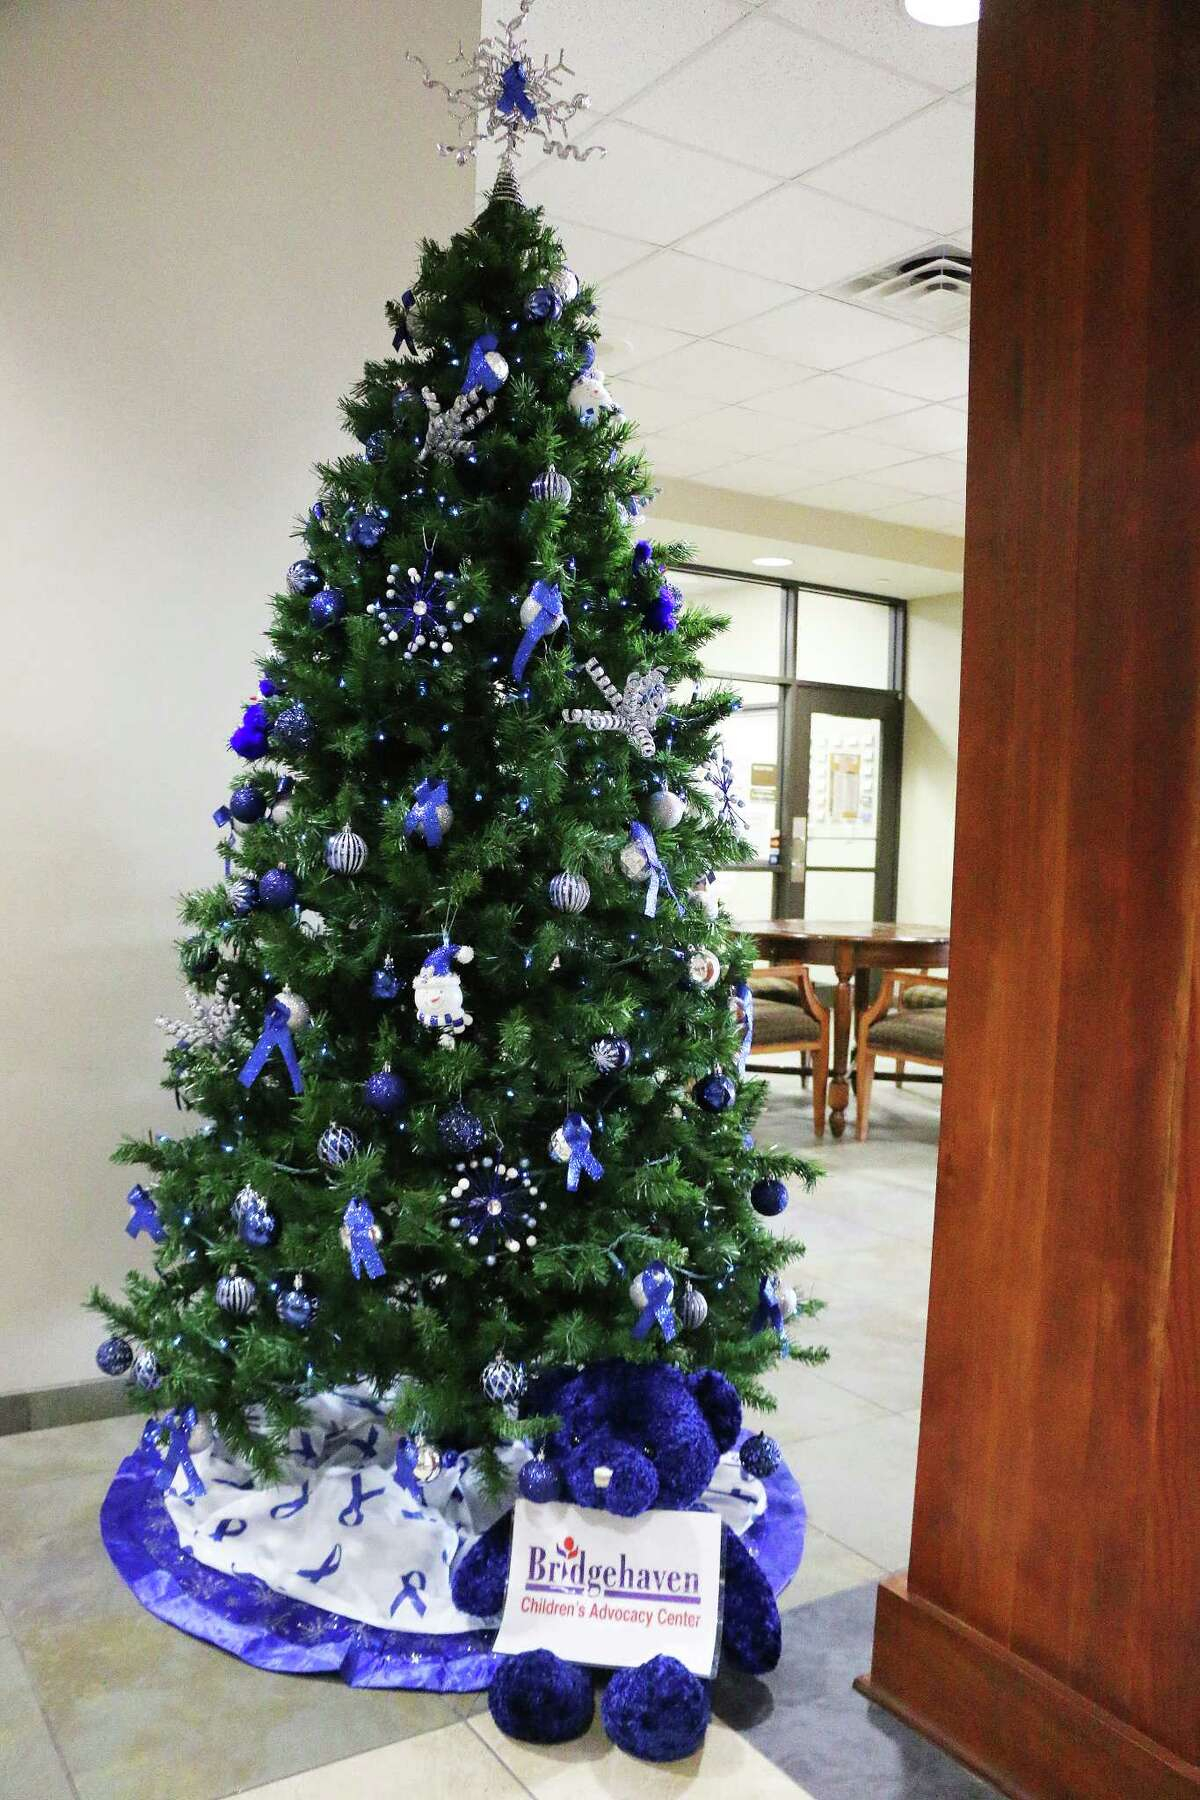 Always trying to brighten the lives of children, Bridgehaven sponsored this beautiful, icy blue tree with a childrenÂ?'s favorite Â?- a teddy bear.